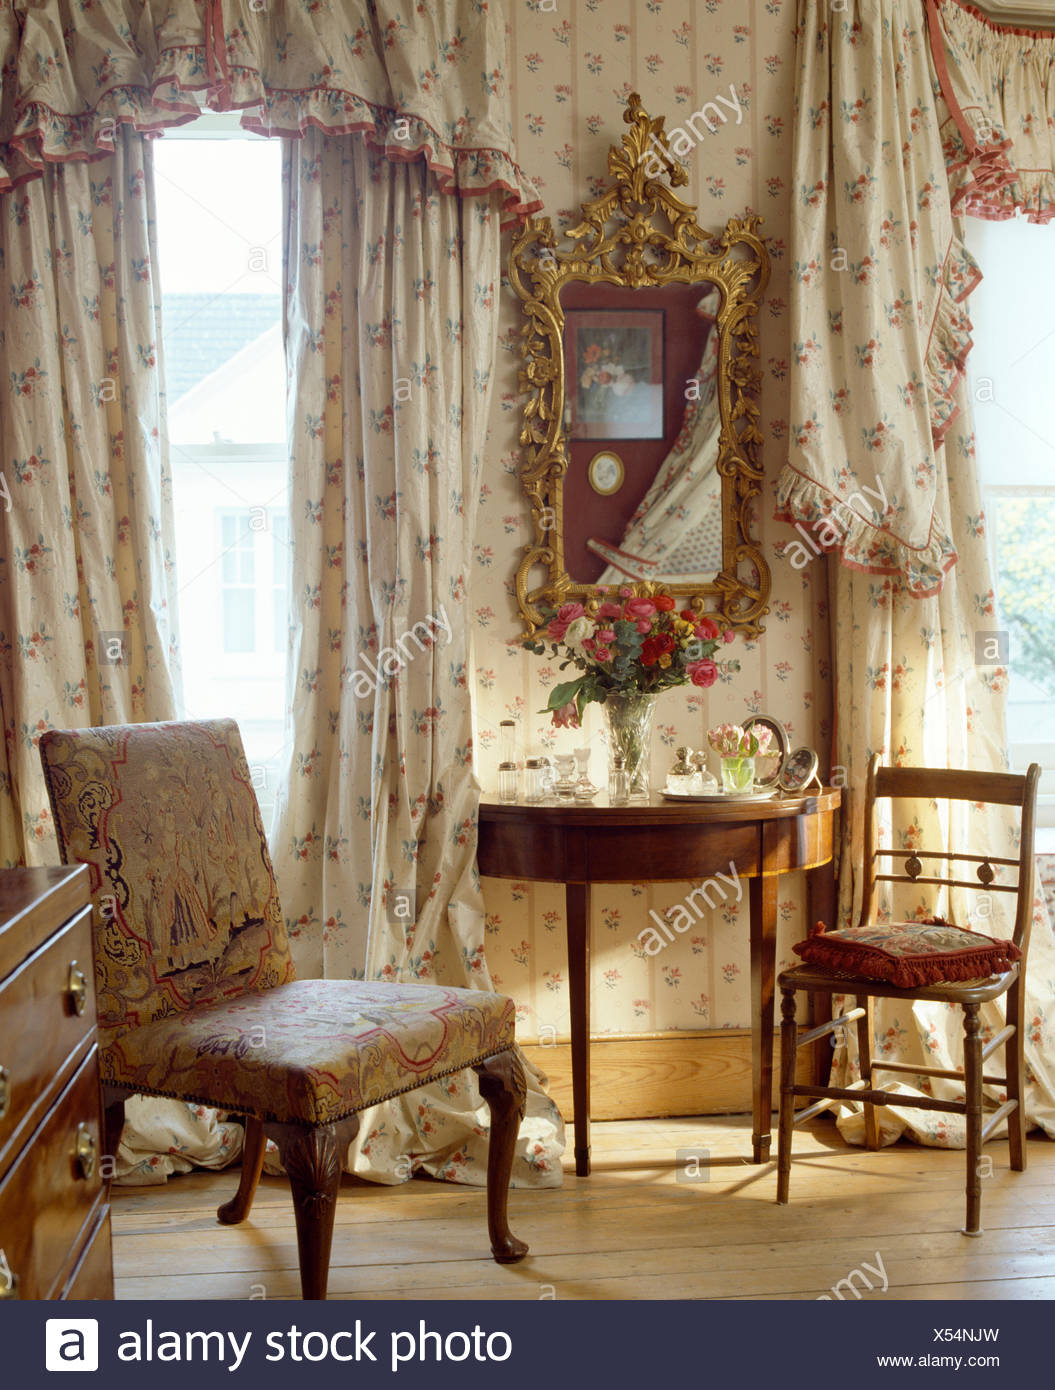 Floral curtains and pelmet on windows in bedroom with antique gilt ...